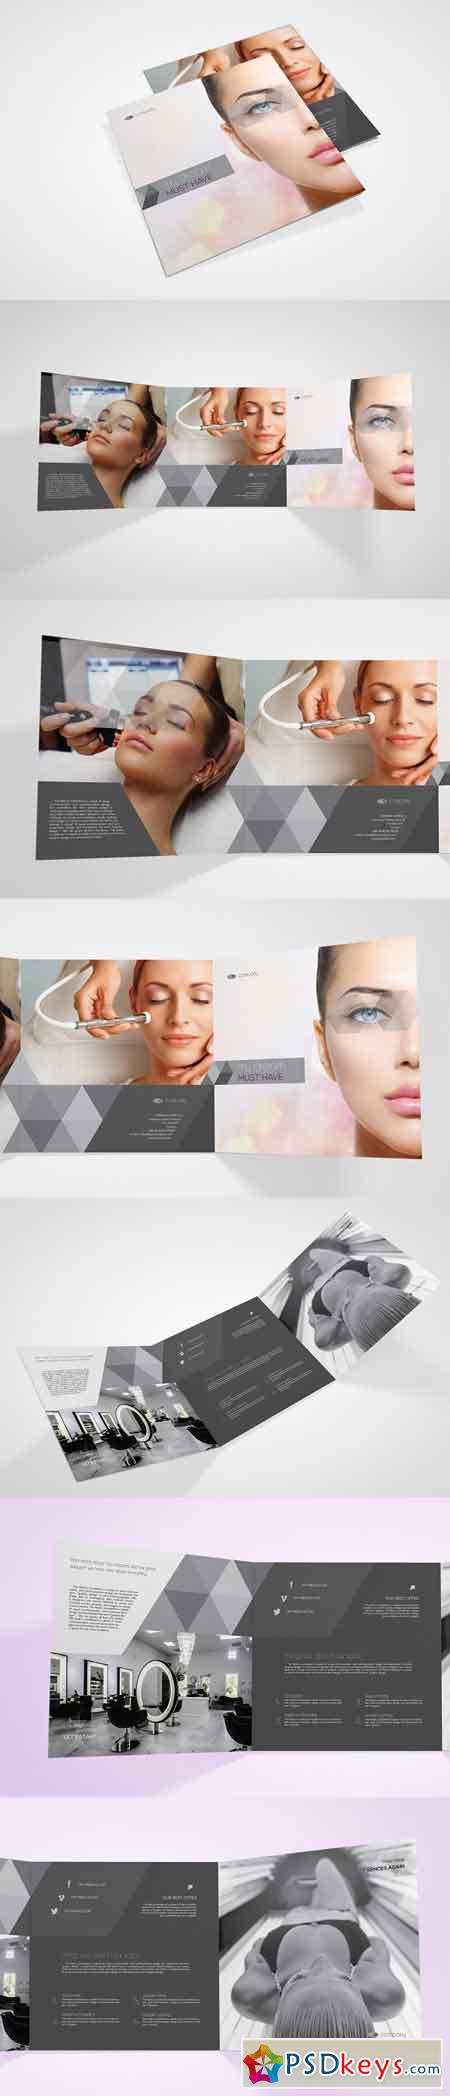 Beauty Salon Square Brochure 2798623